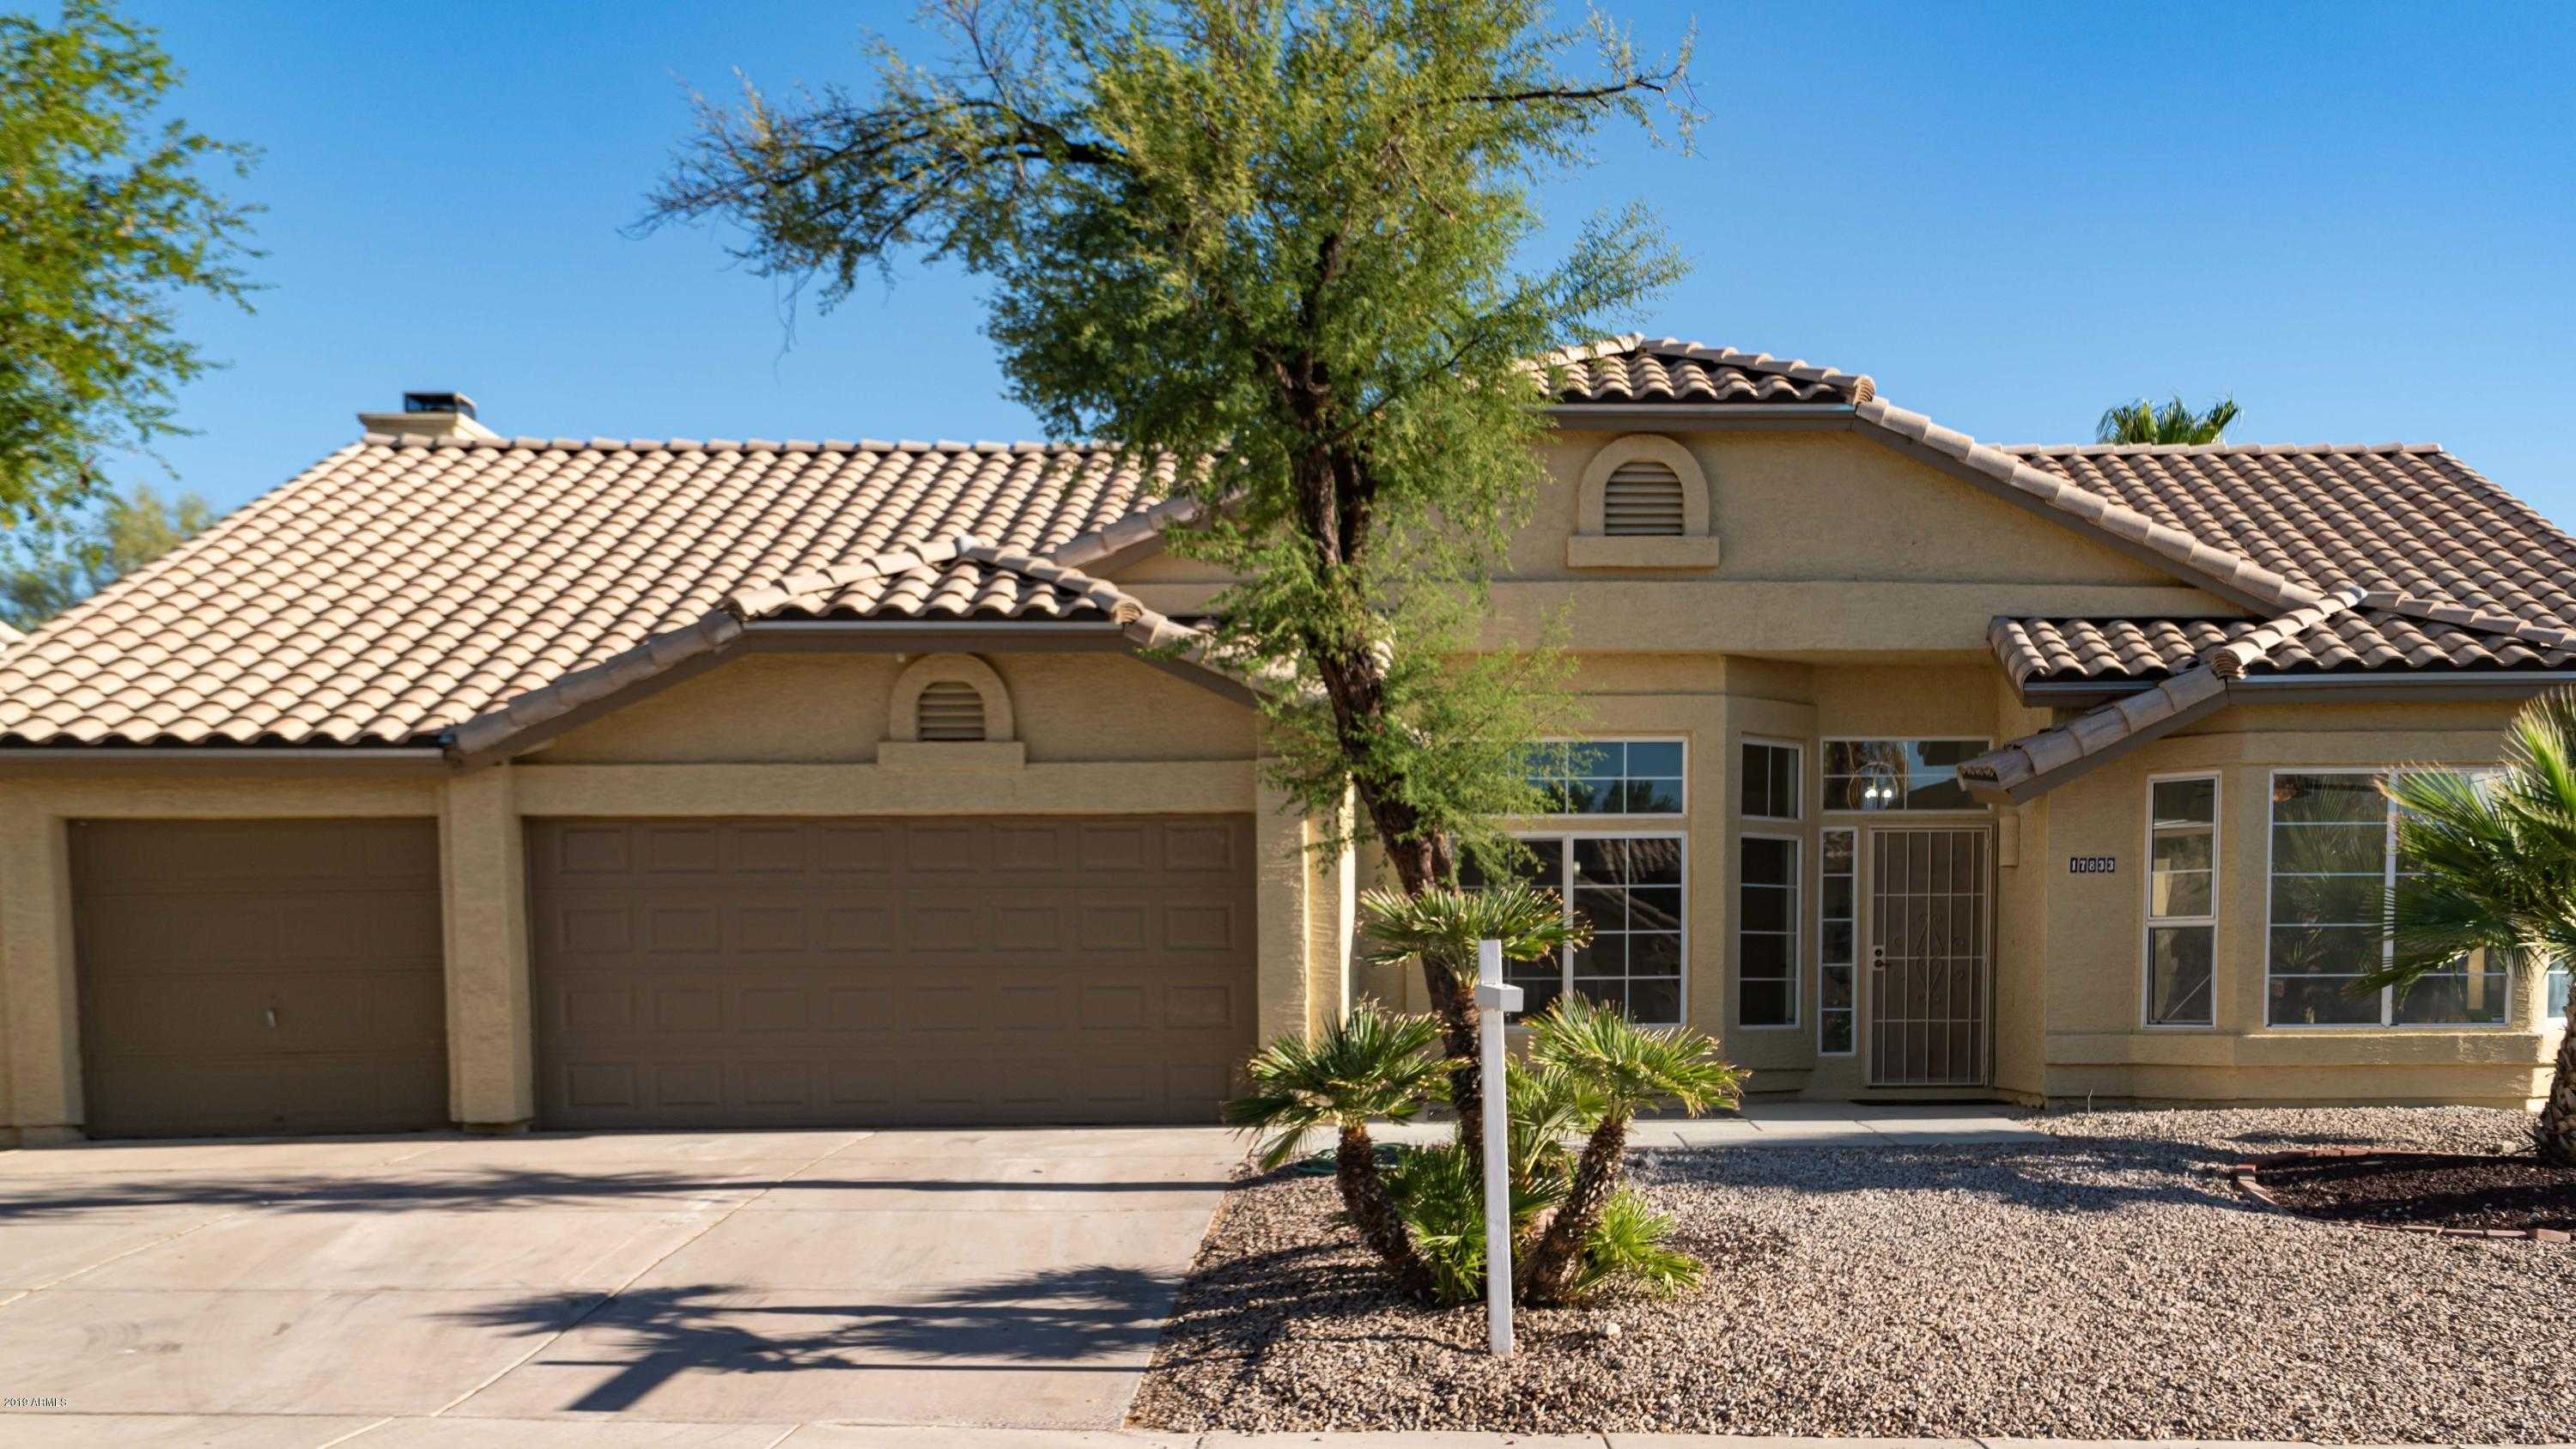 $362,600 - 4Br/2Ba - Home for Sale in Estrella Parcel 34, Goodyear